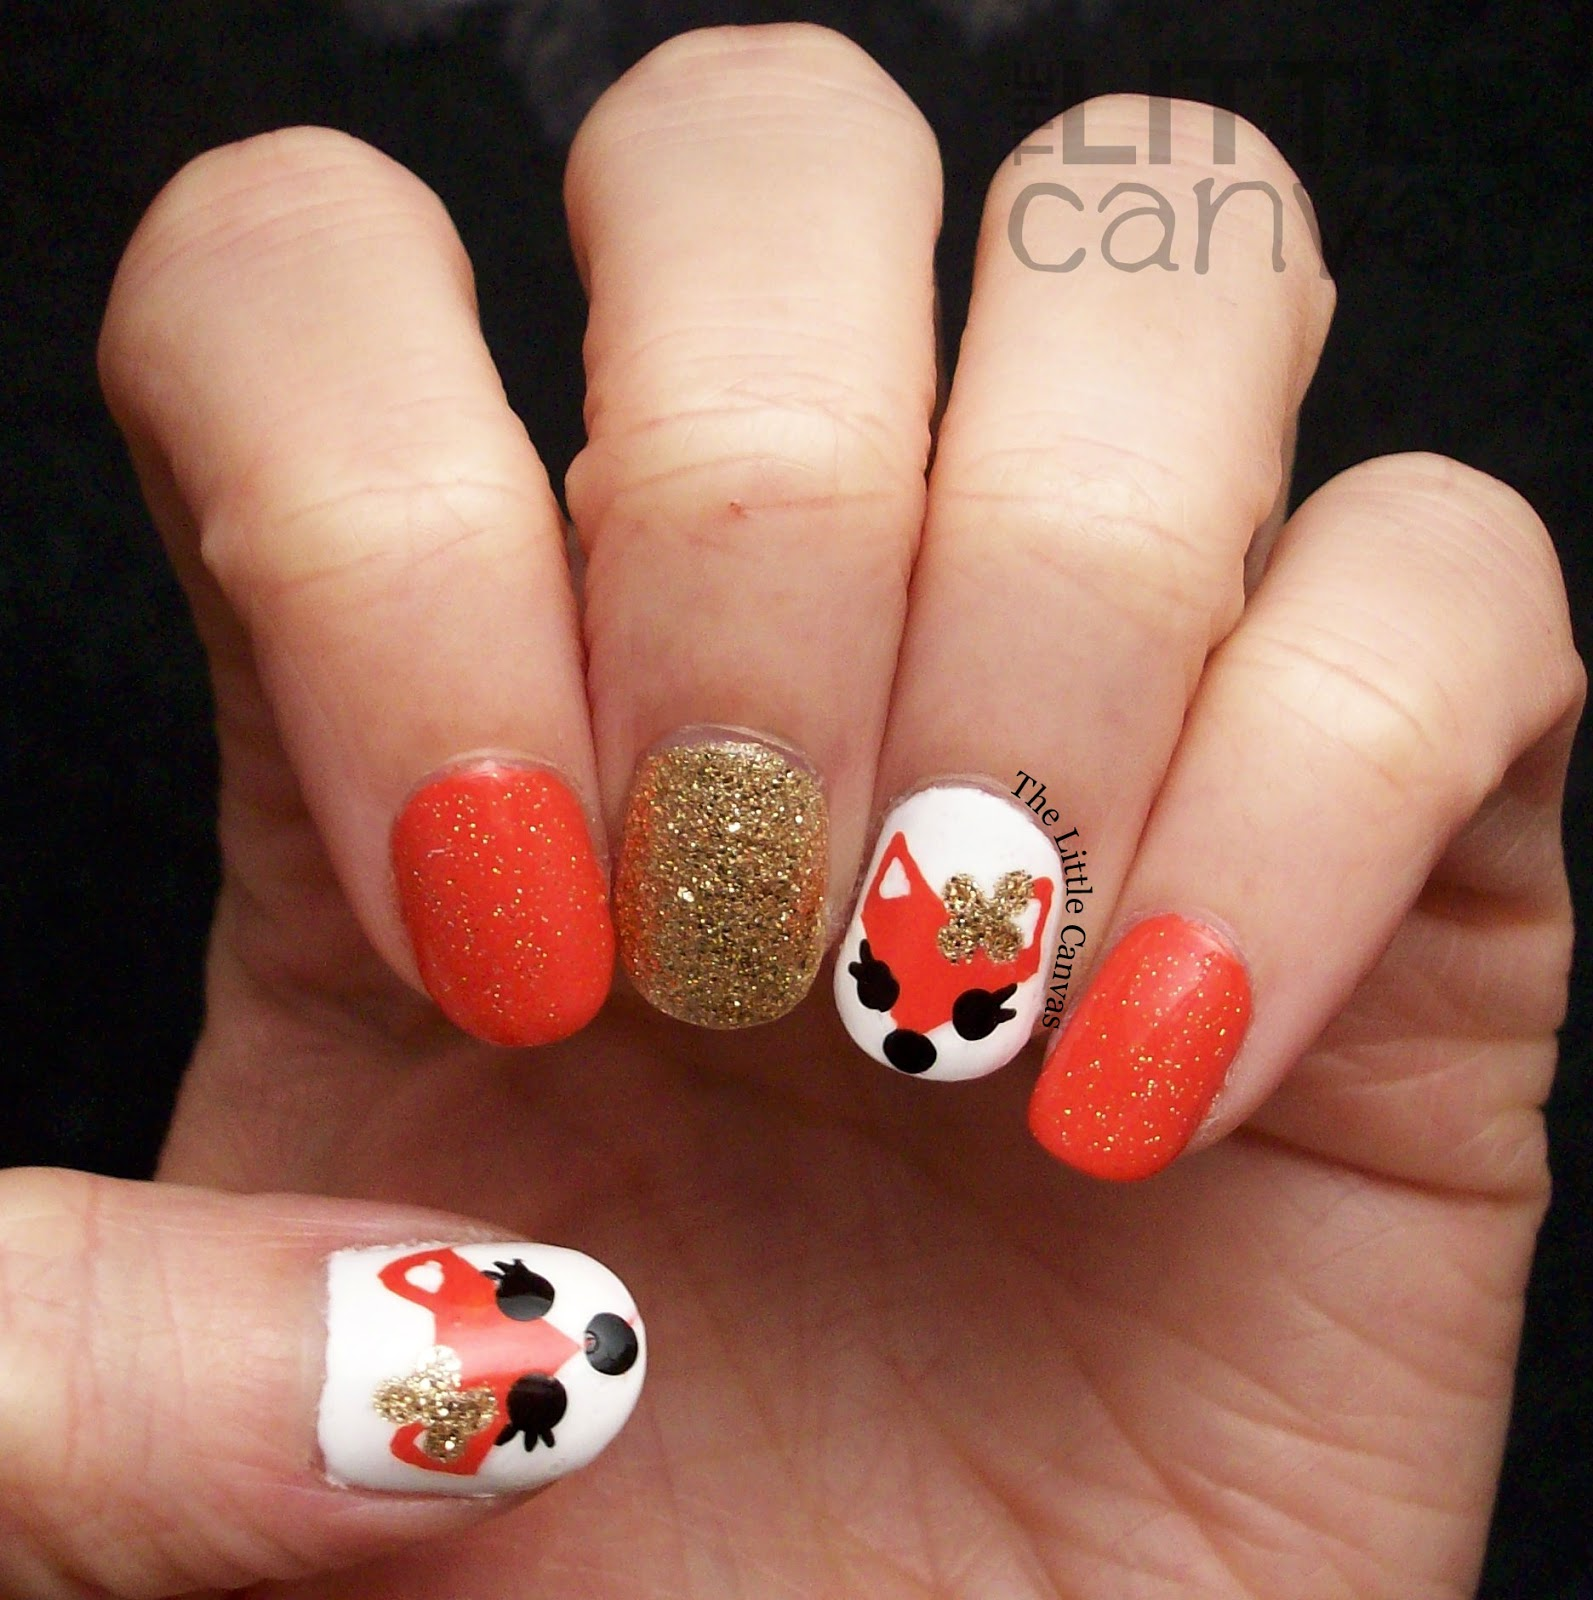 Fox Nail Art Inspired by 25 SweetPeas! - The Little Canvas